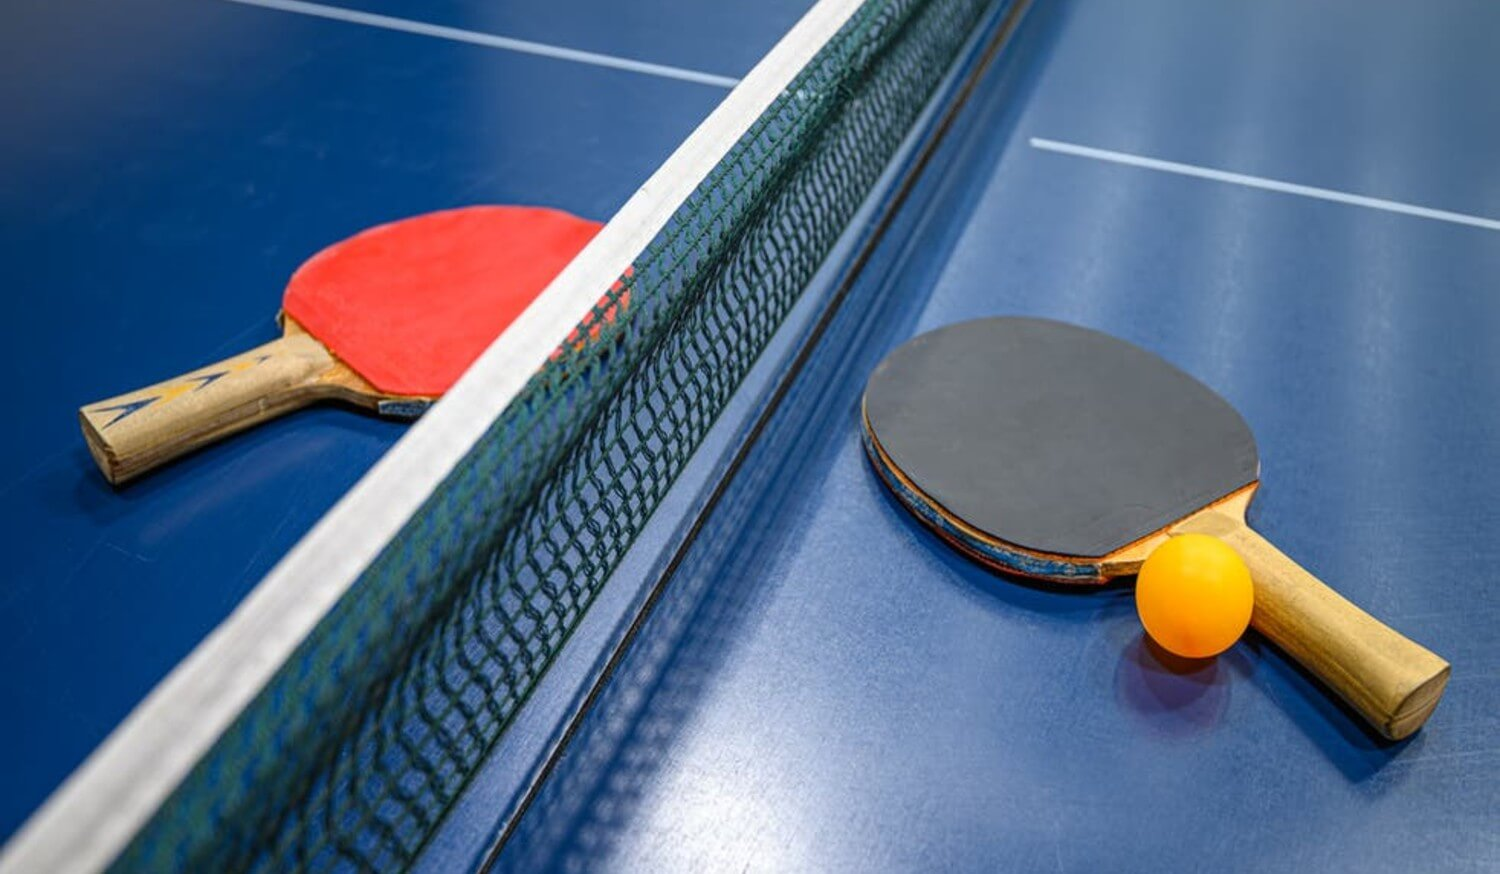 Table Tennis Spin Serve Tips